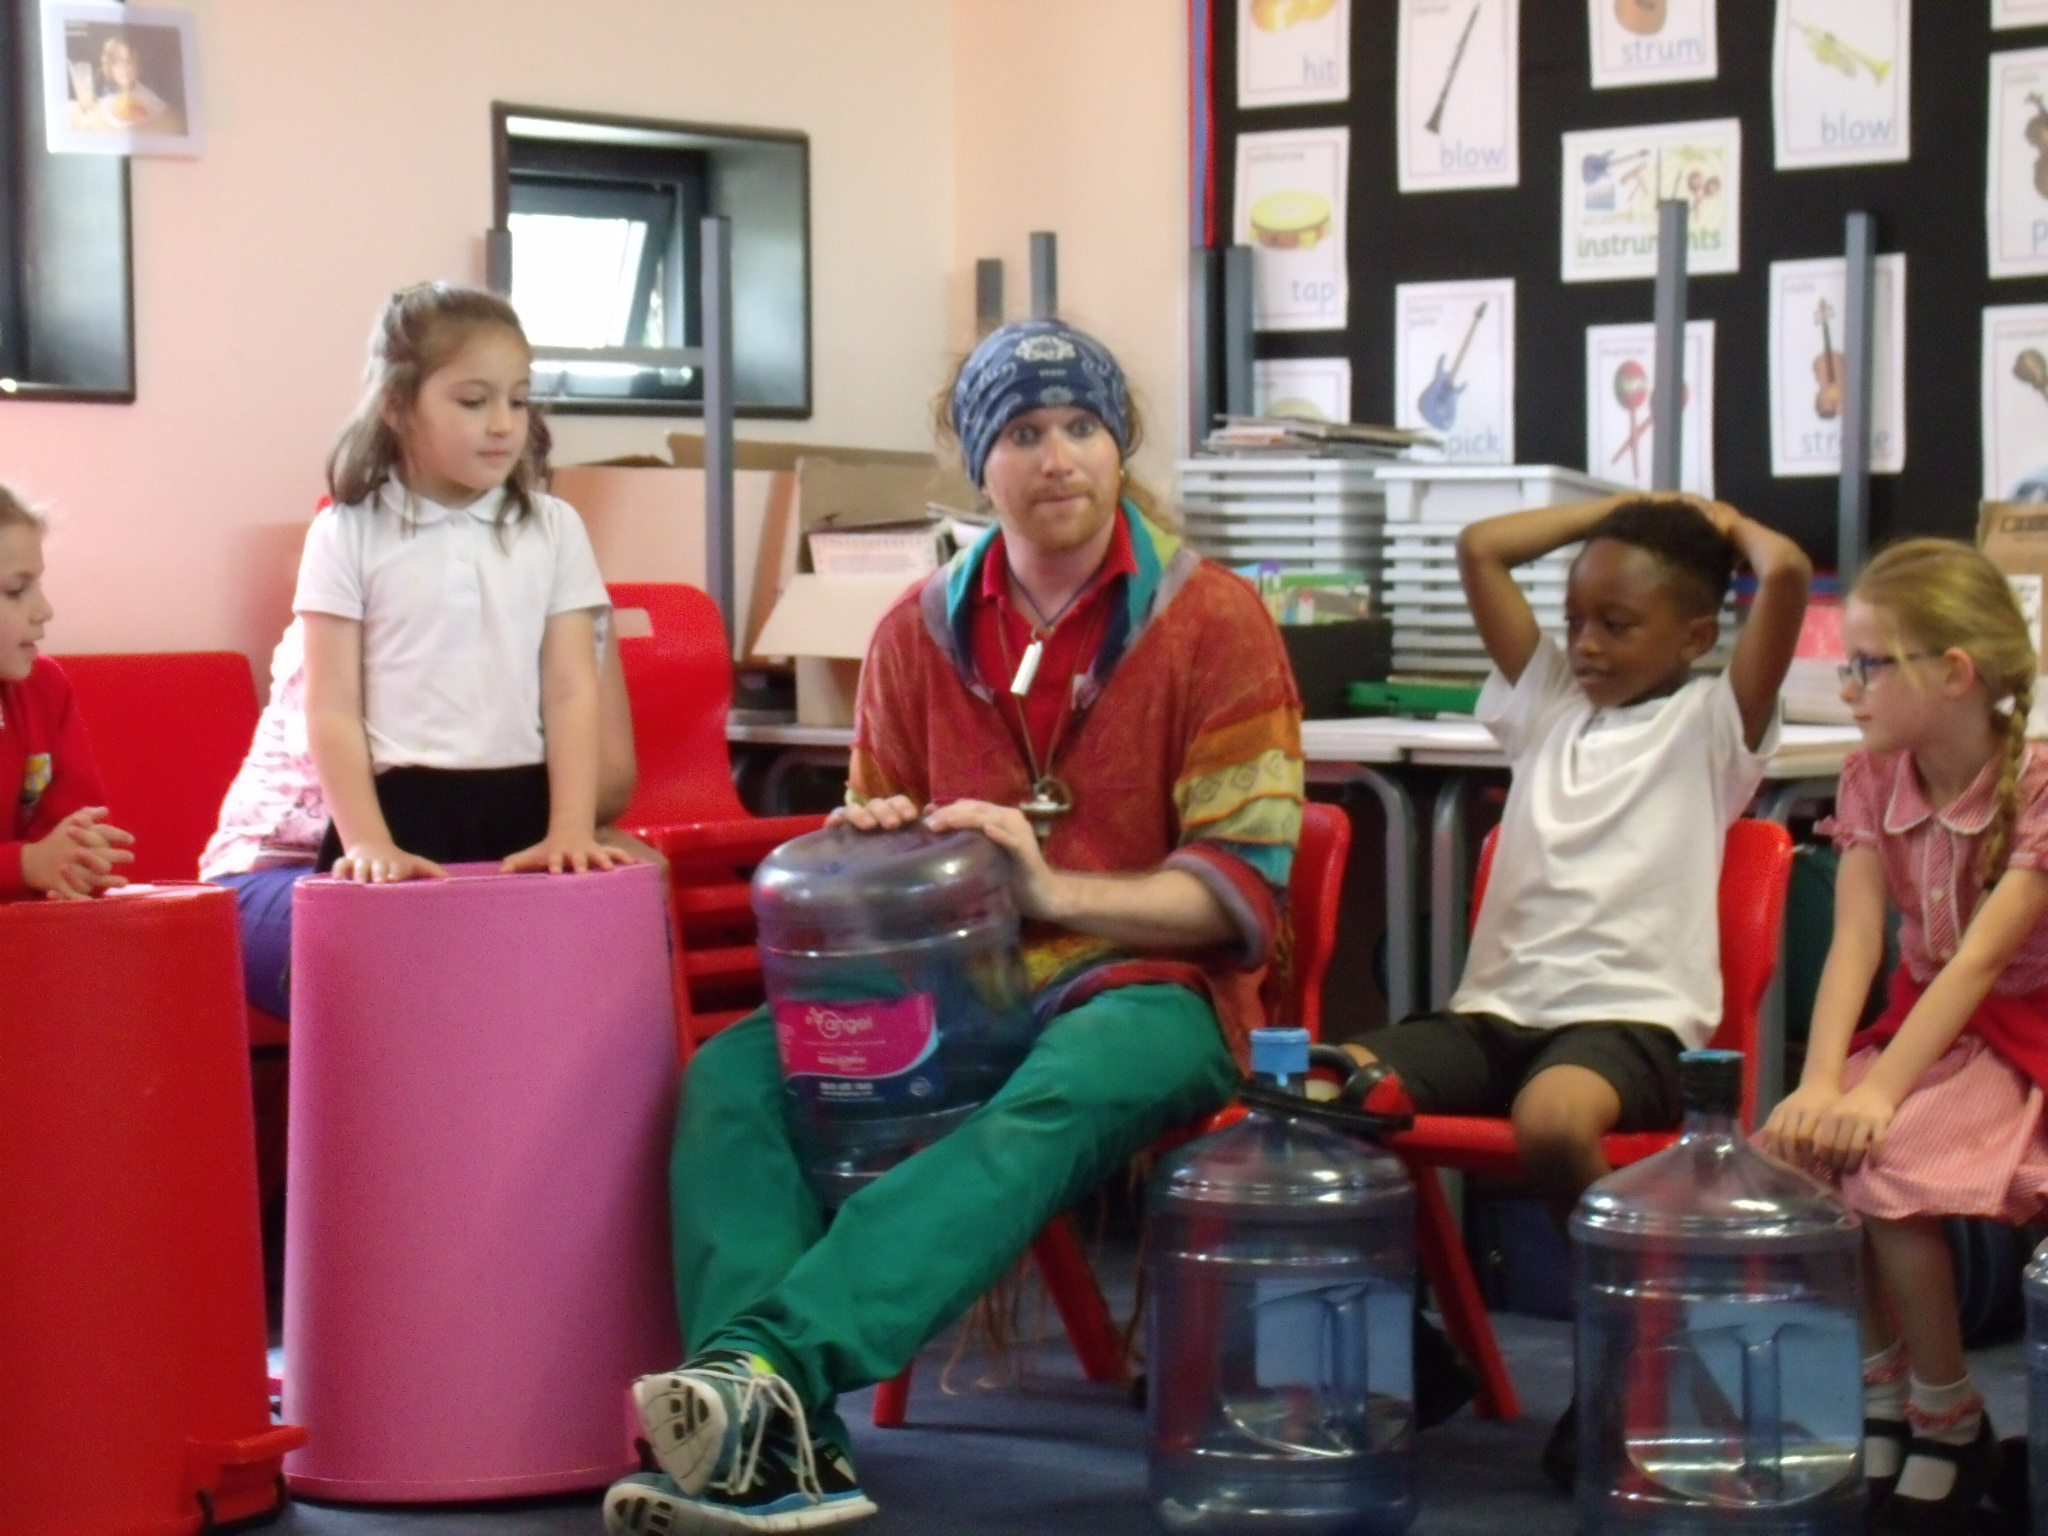 School children and teacher playing music on large colourful empty bins and bottles